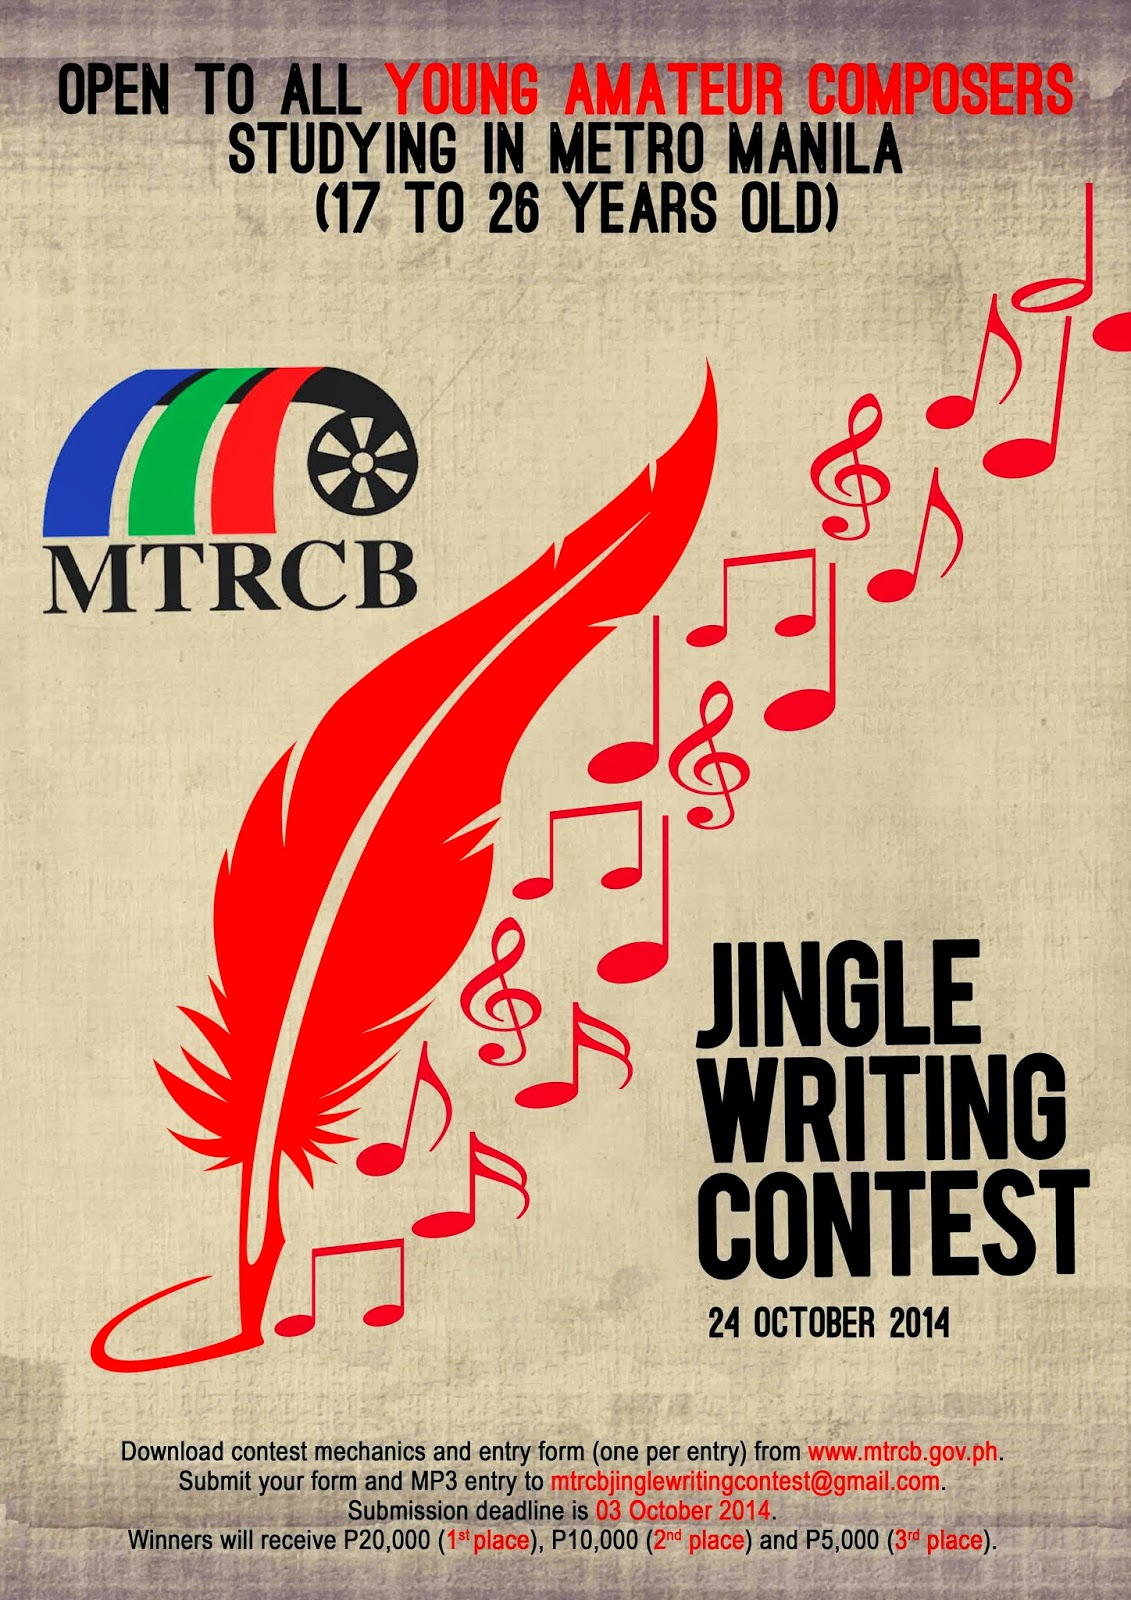 http://www.boy-kuripot.com/2014/09/mtrcb-jingle-writing-contest.html